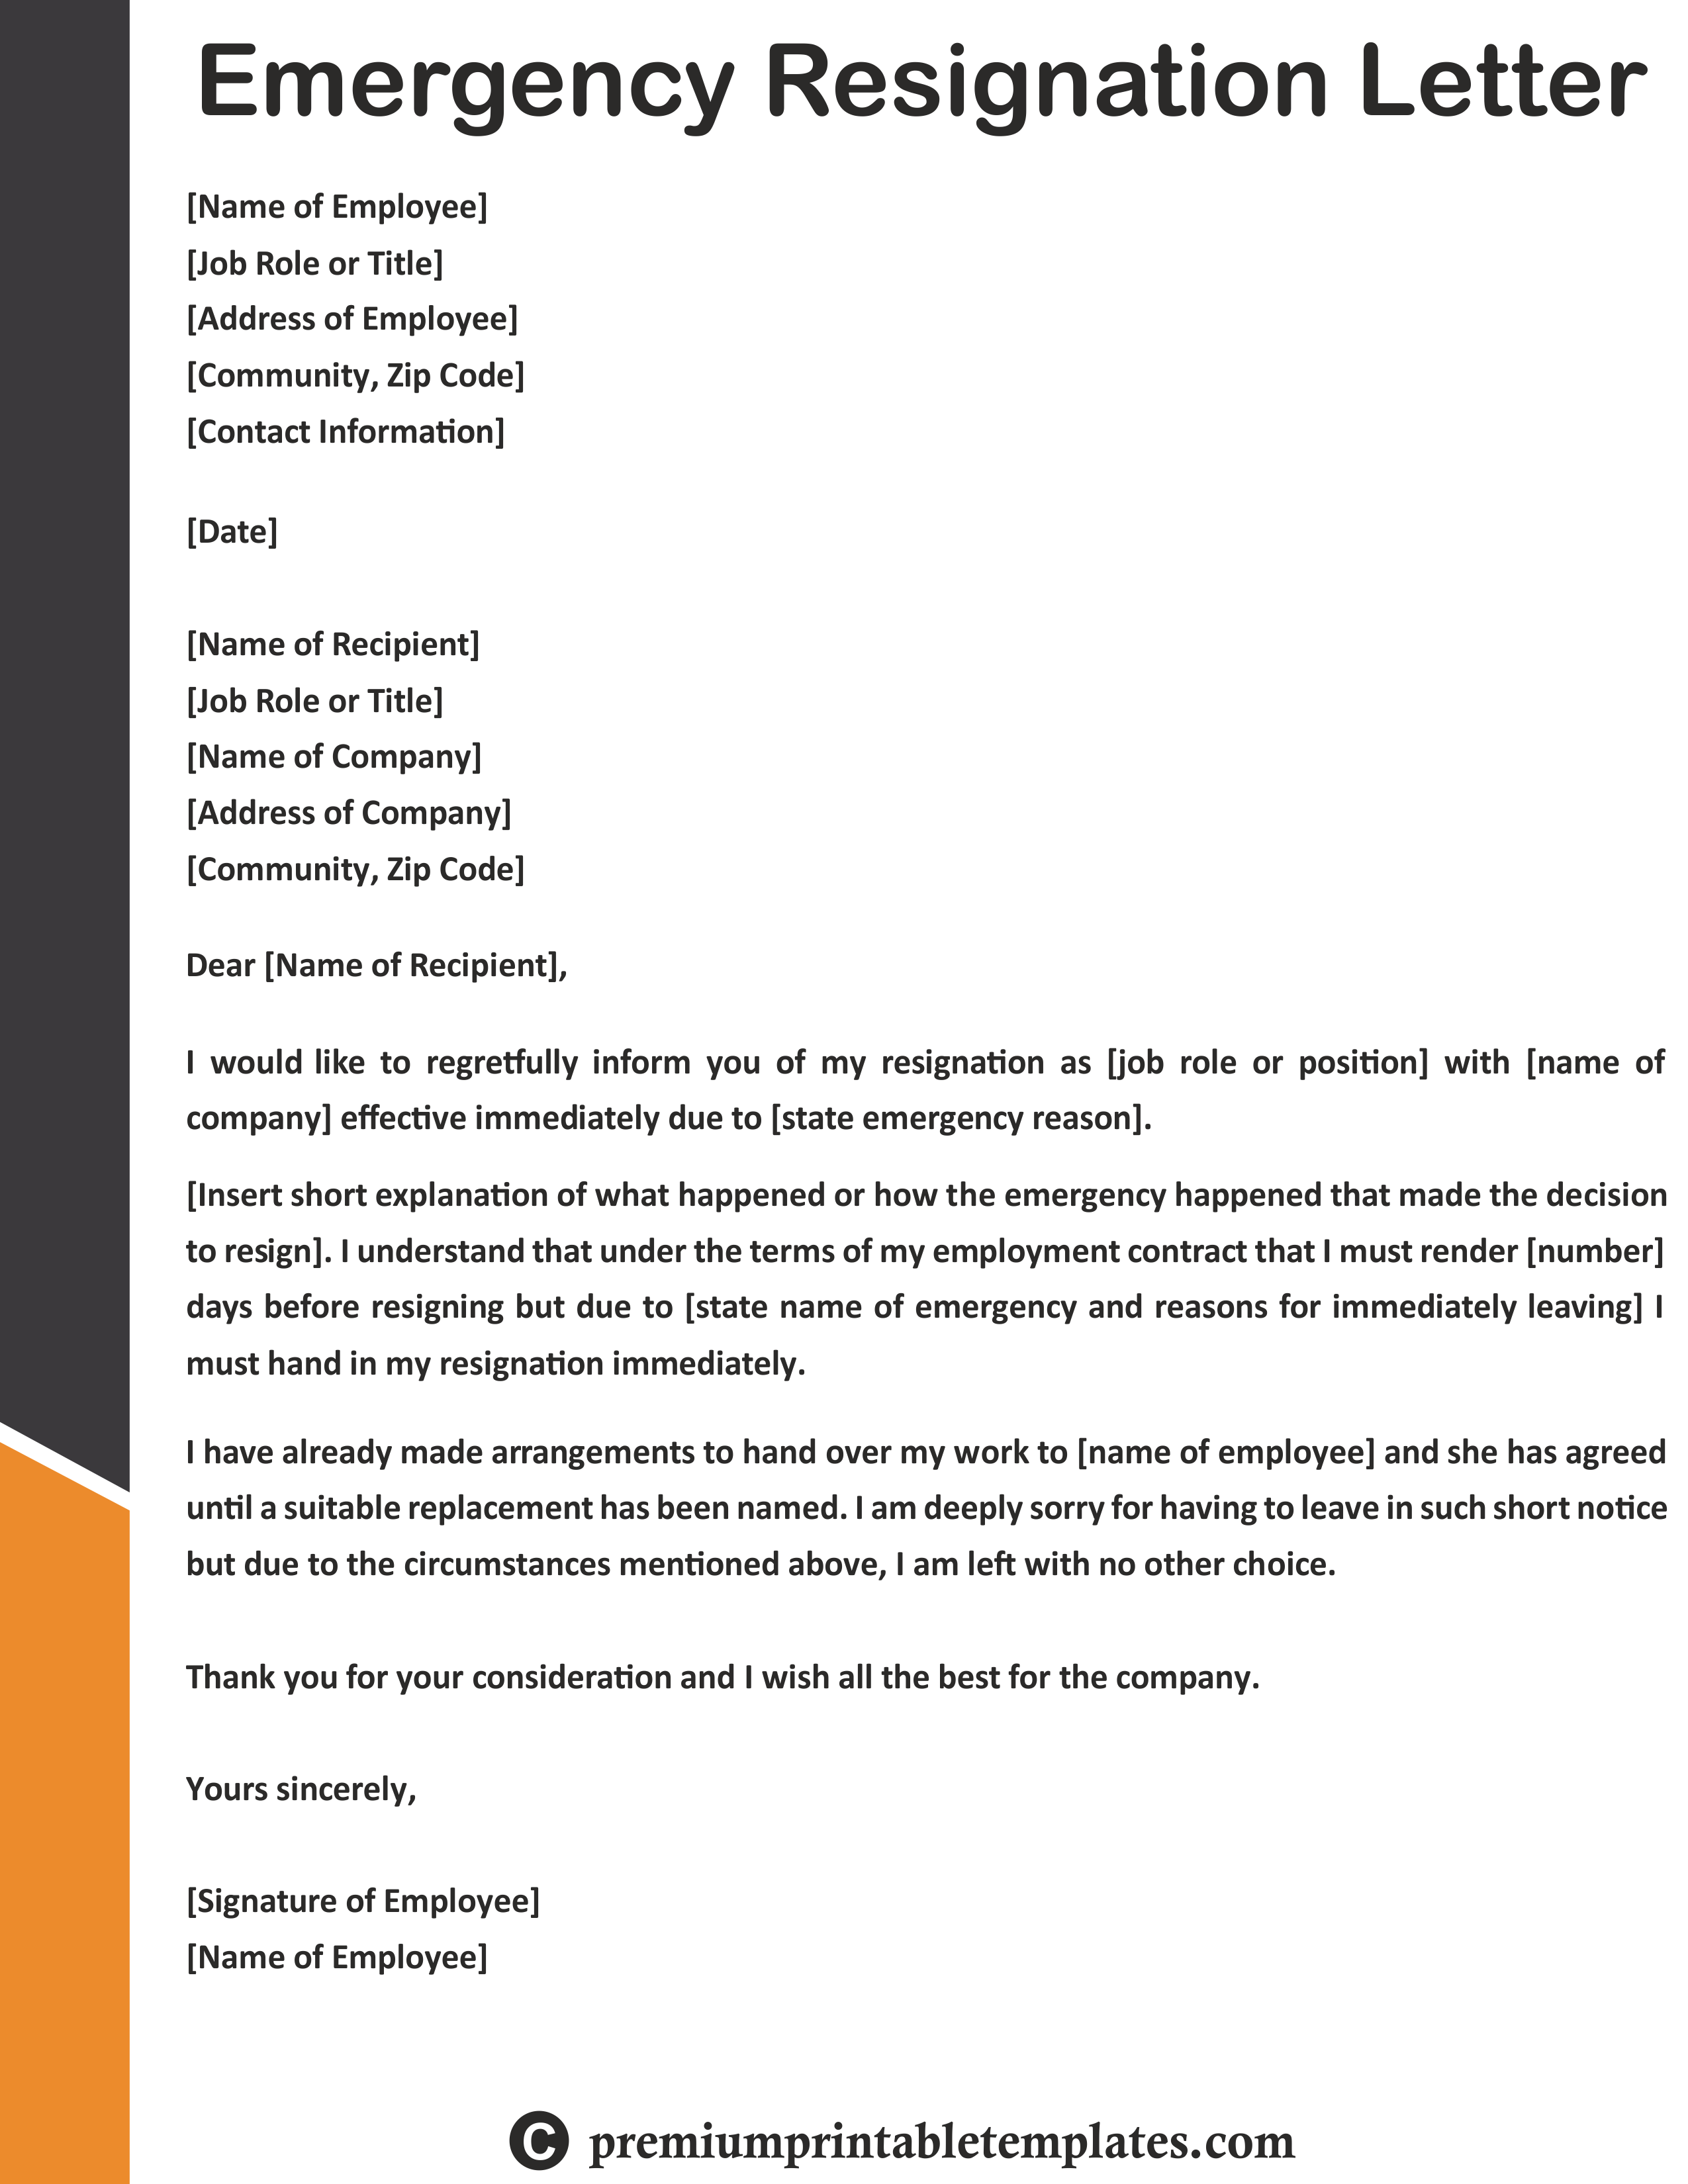 Resignation Letter Due To Health Reasons Emergency Resignation Letter Templates Resignation Letter